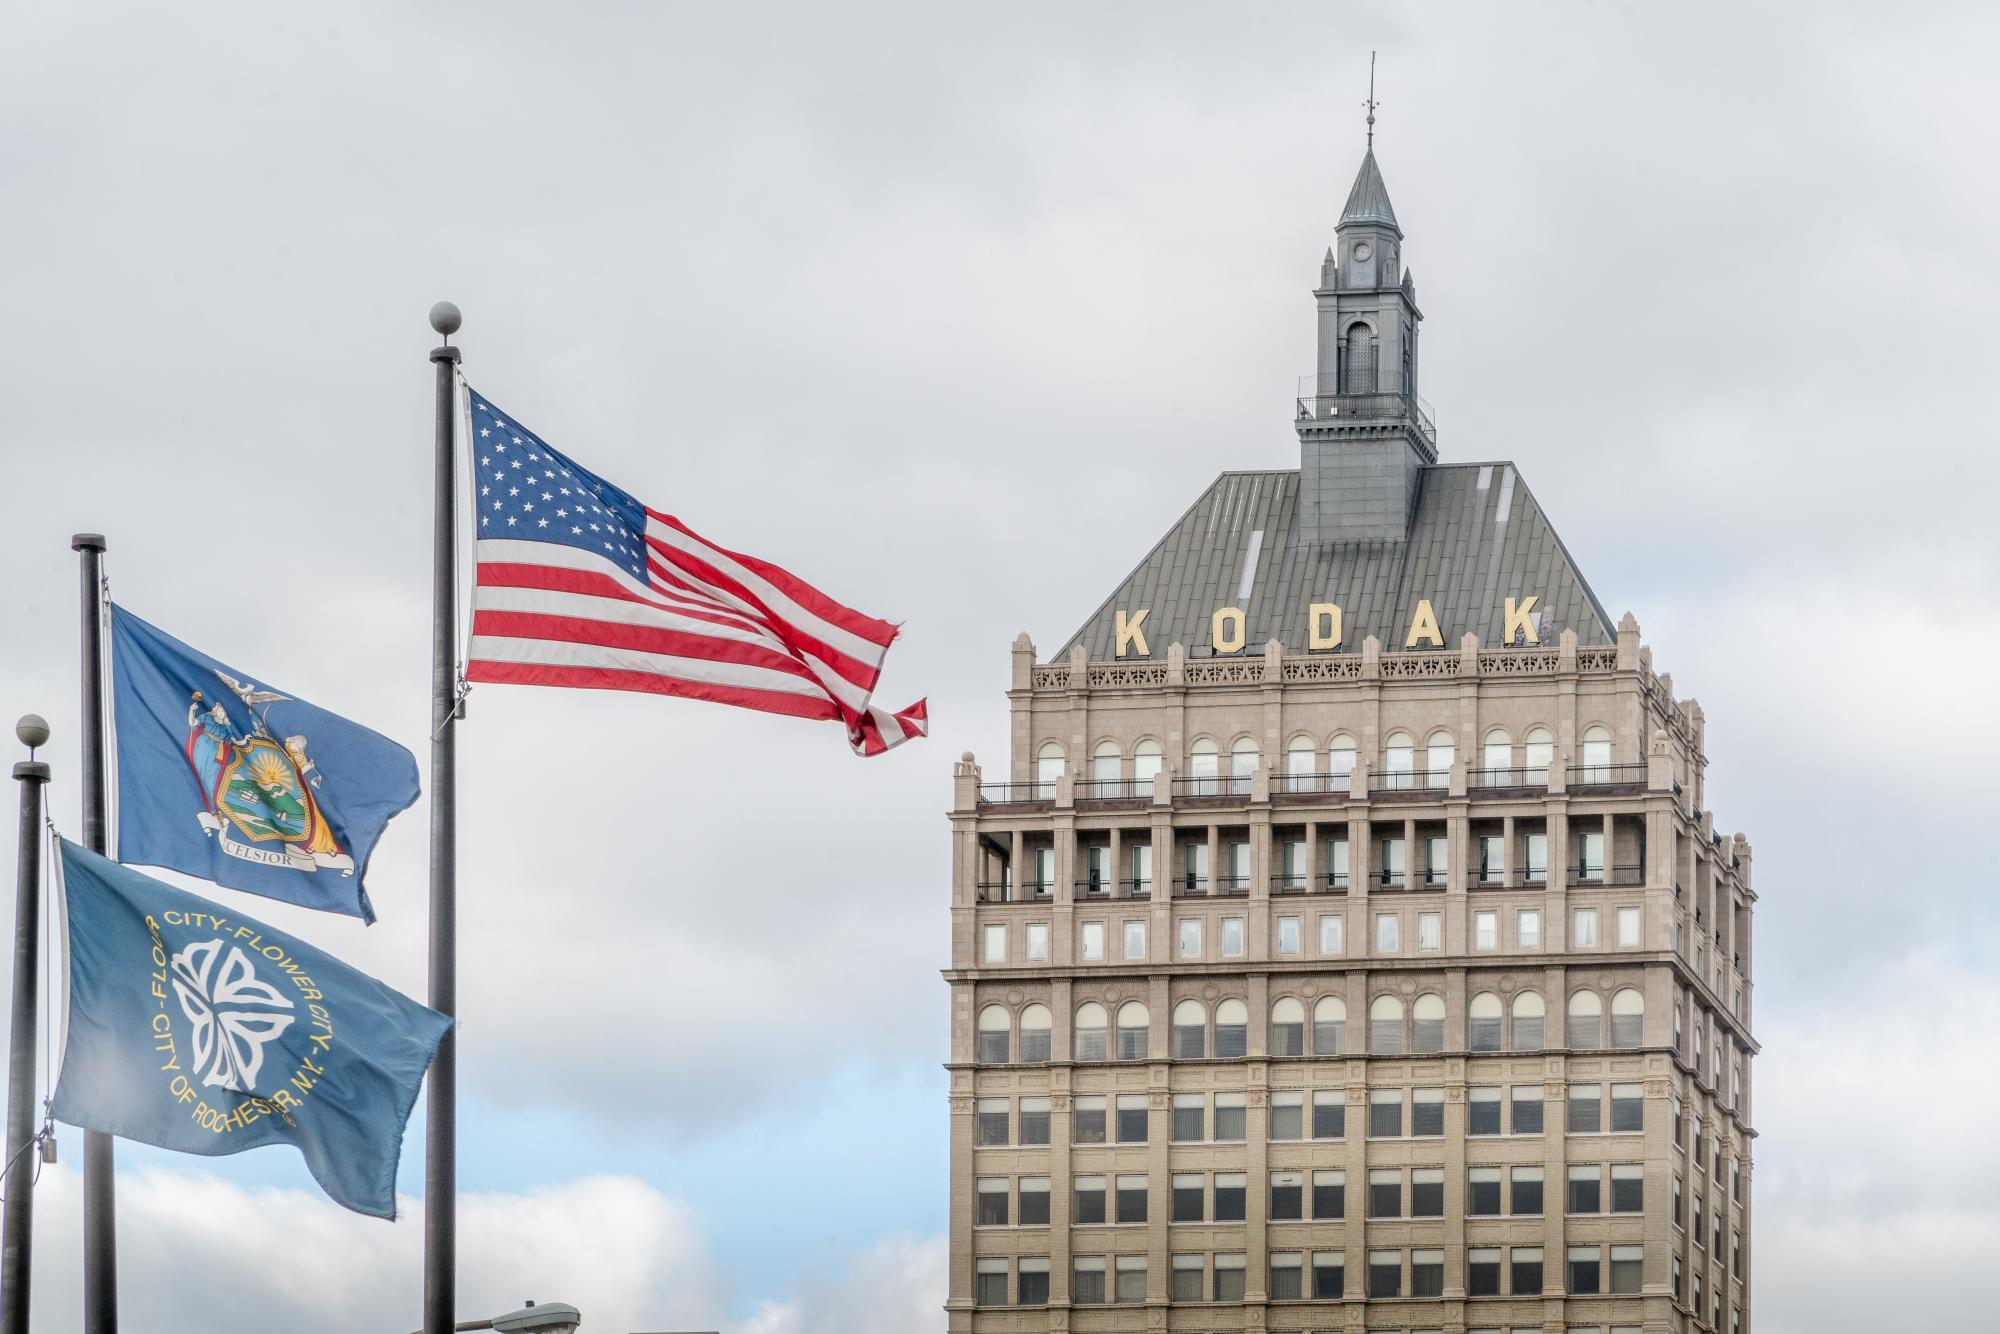 A view of Kodak tower in downtown Rochester. Photograph by Rob Rauchwerger.